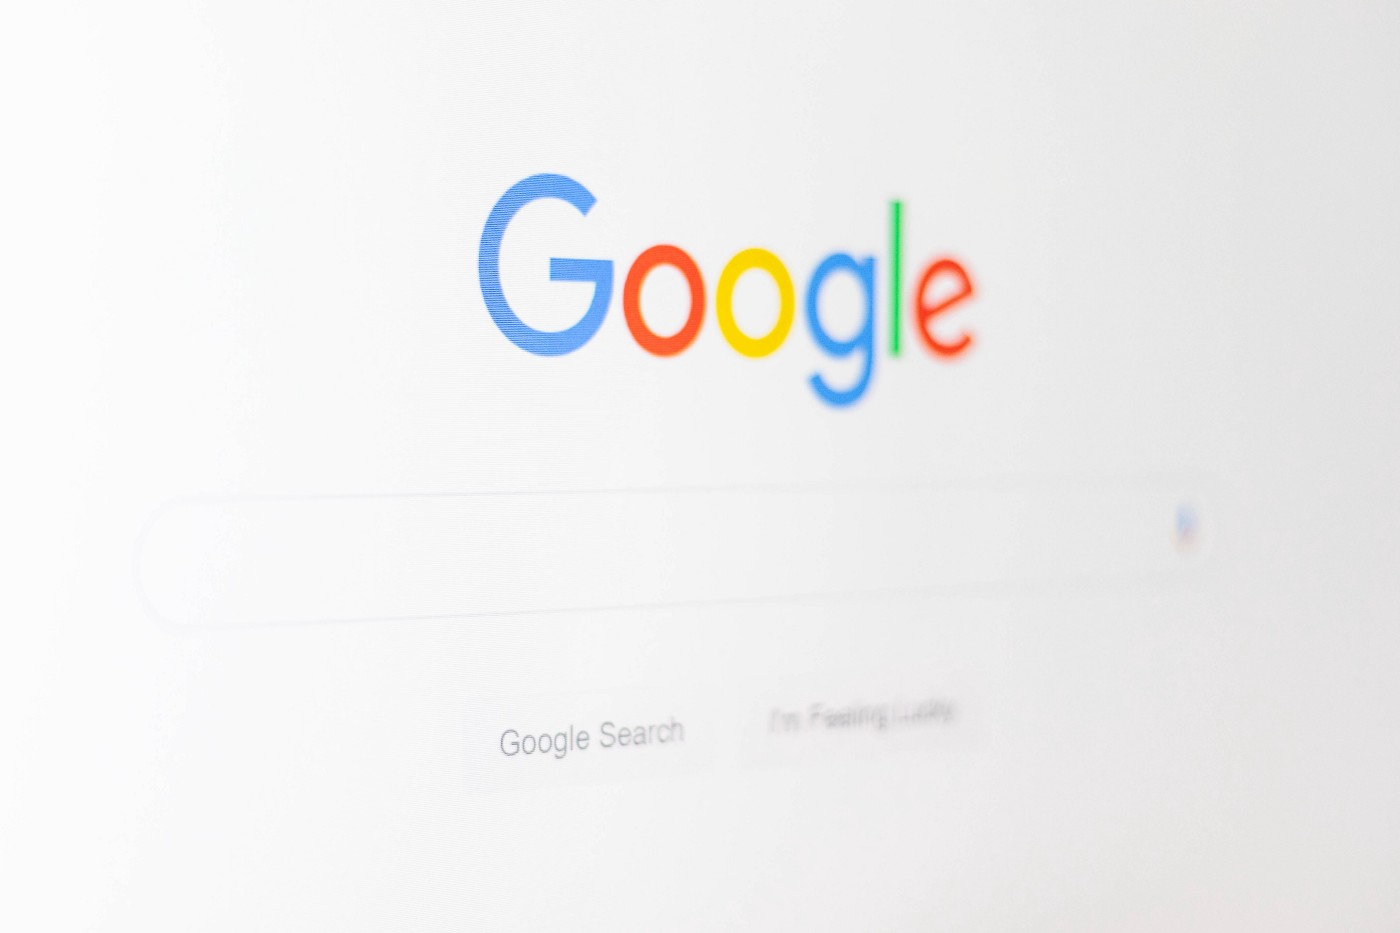 A screenshot of Google's search page.